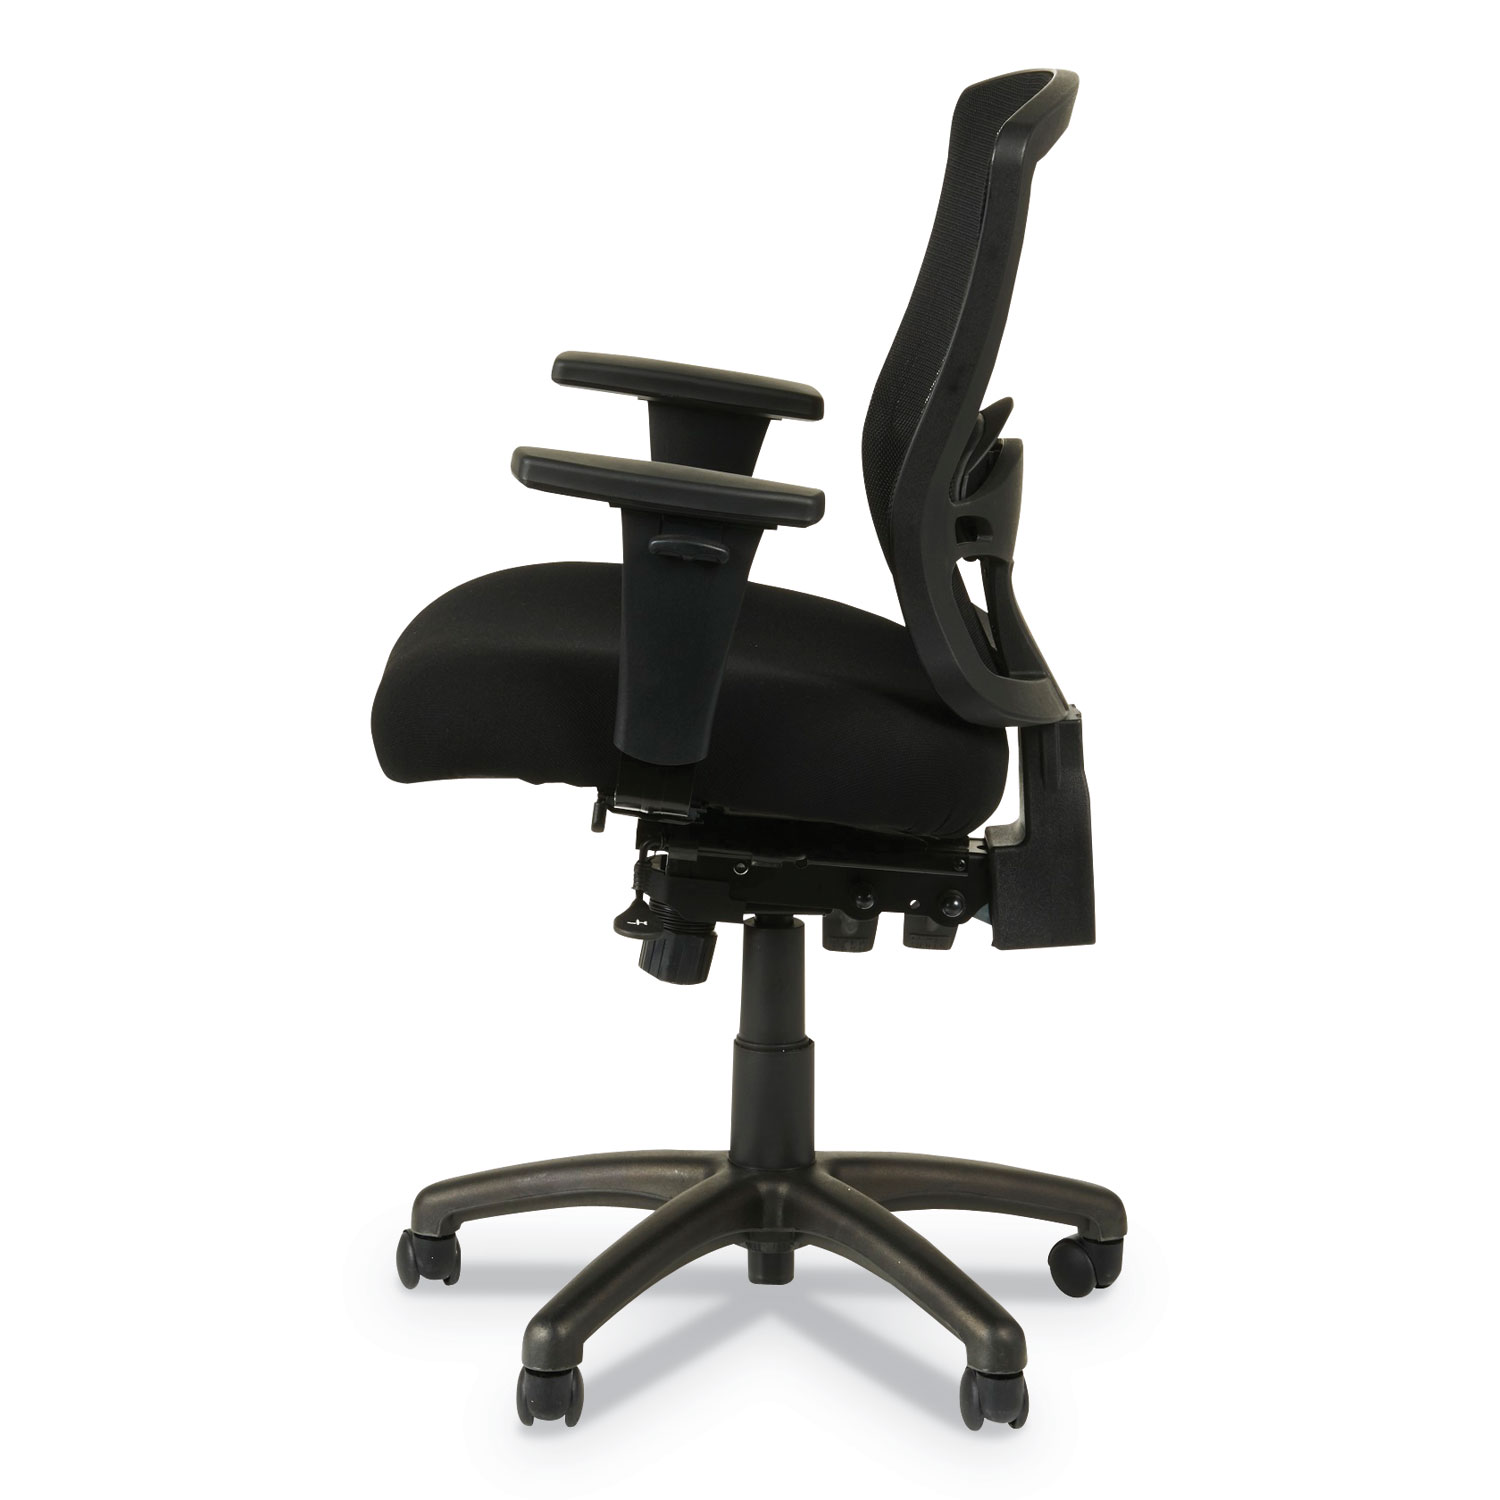 Alera Office Chairs Alera Etros Series Petite Mid Back Multifunction Mesh Chair Black